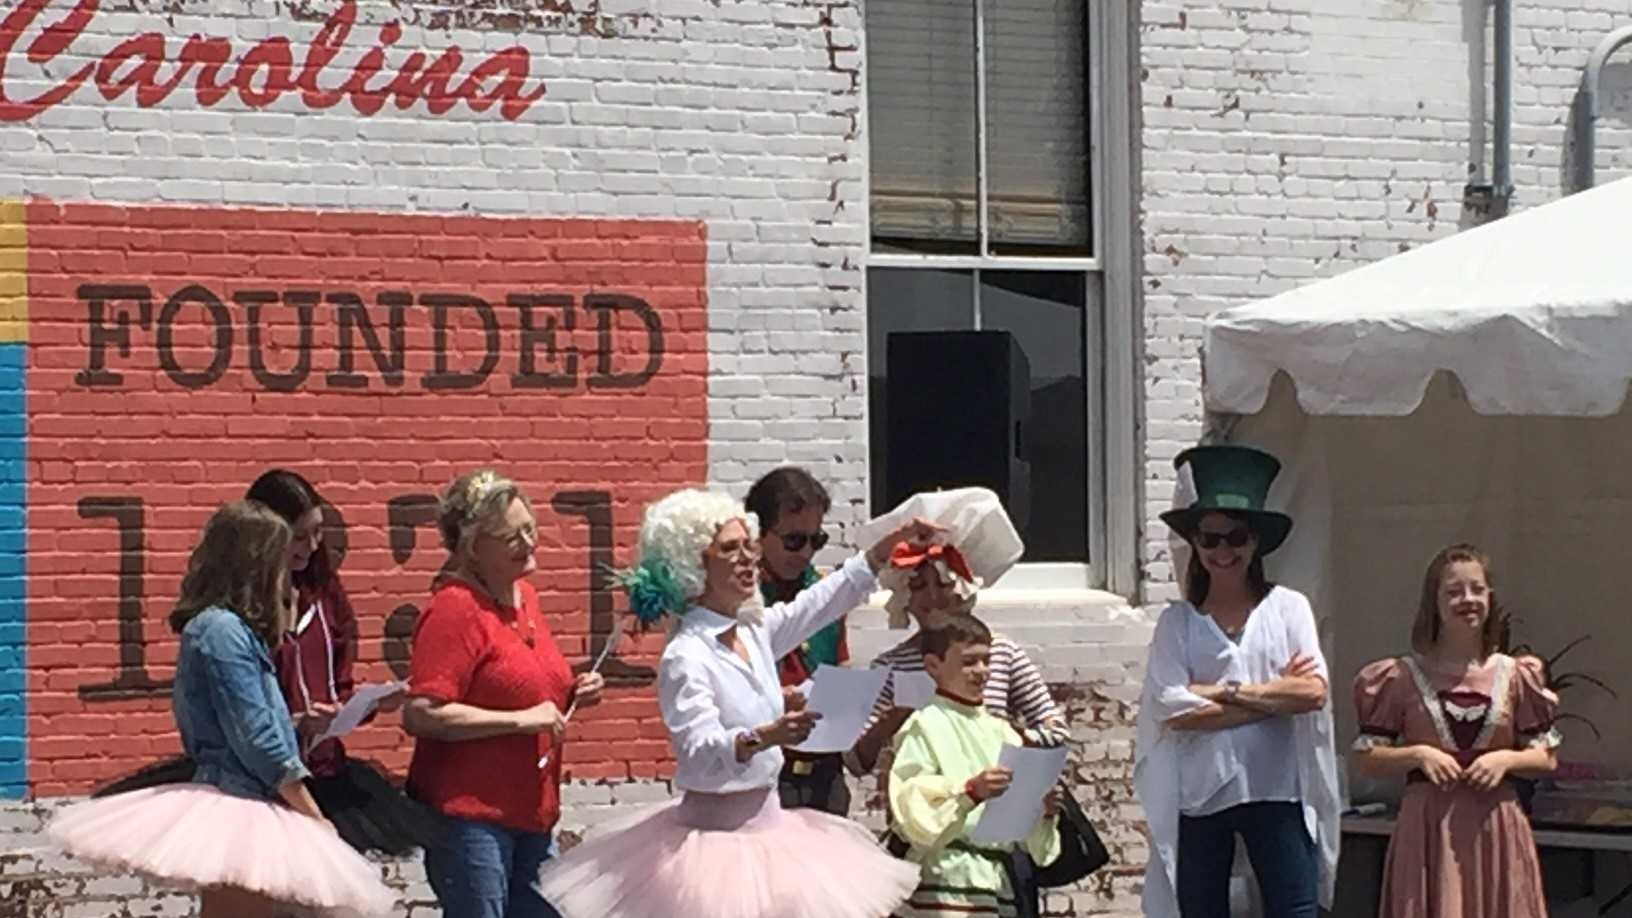 Members of several nonprofits put on costumes and used props for a cheer competition as part of Support Spartanburg County Day.